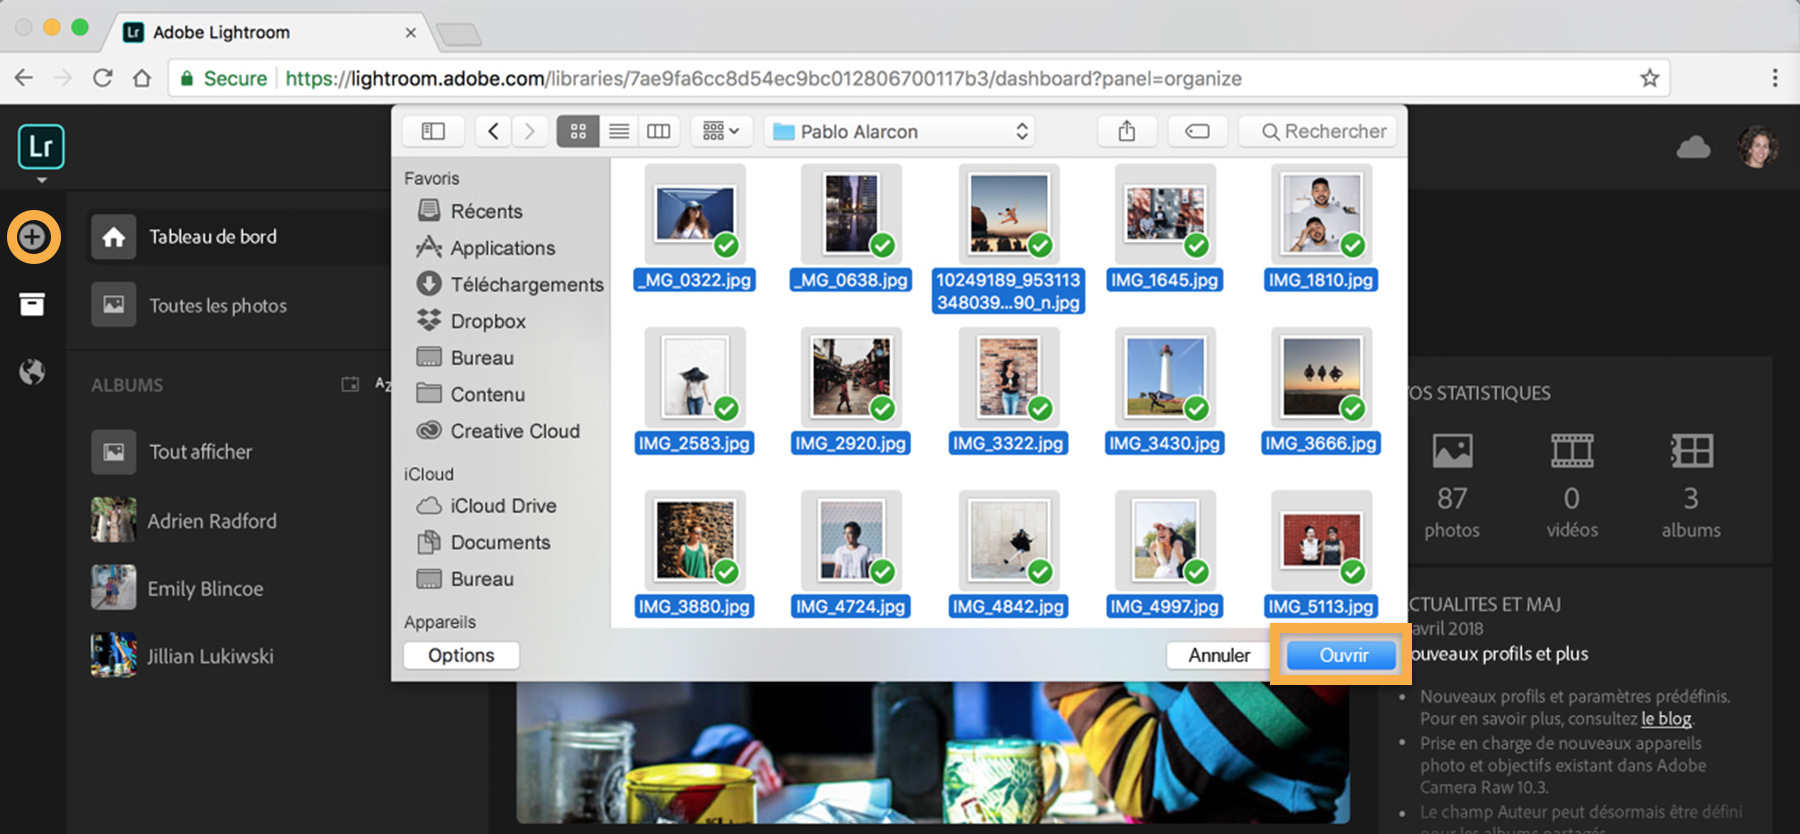 organize-edit-share-photos-online_1